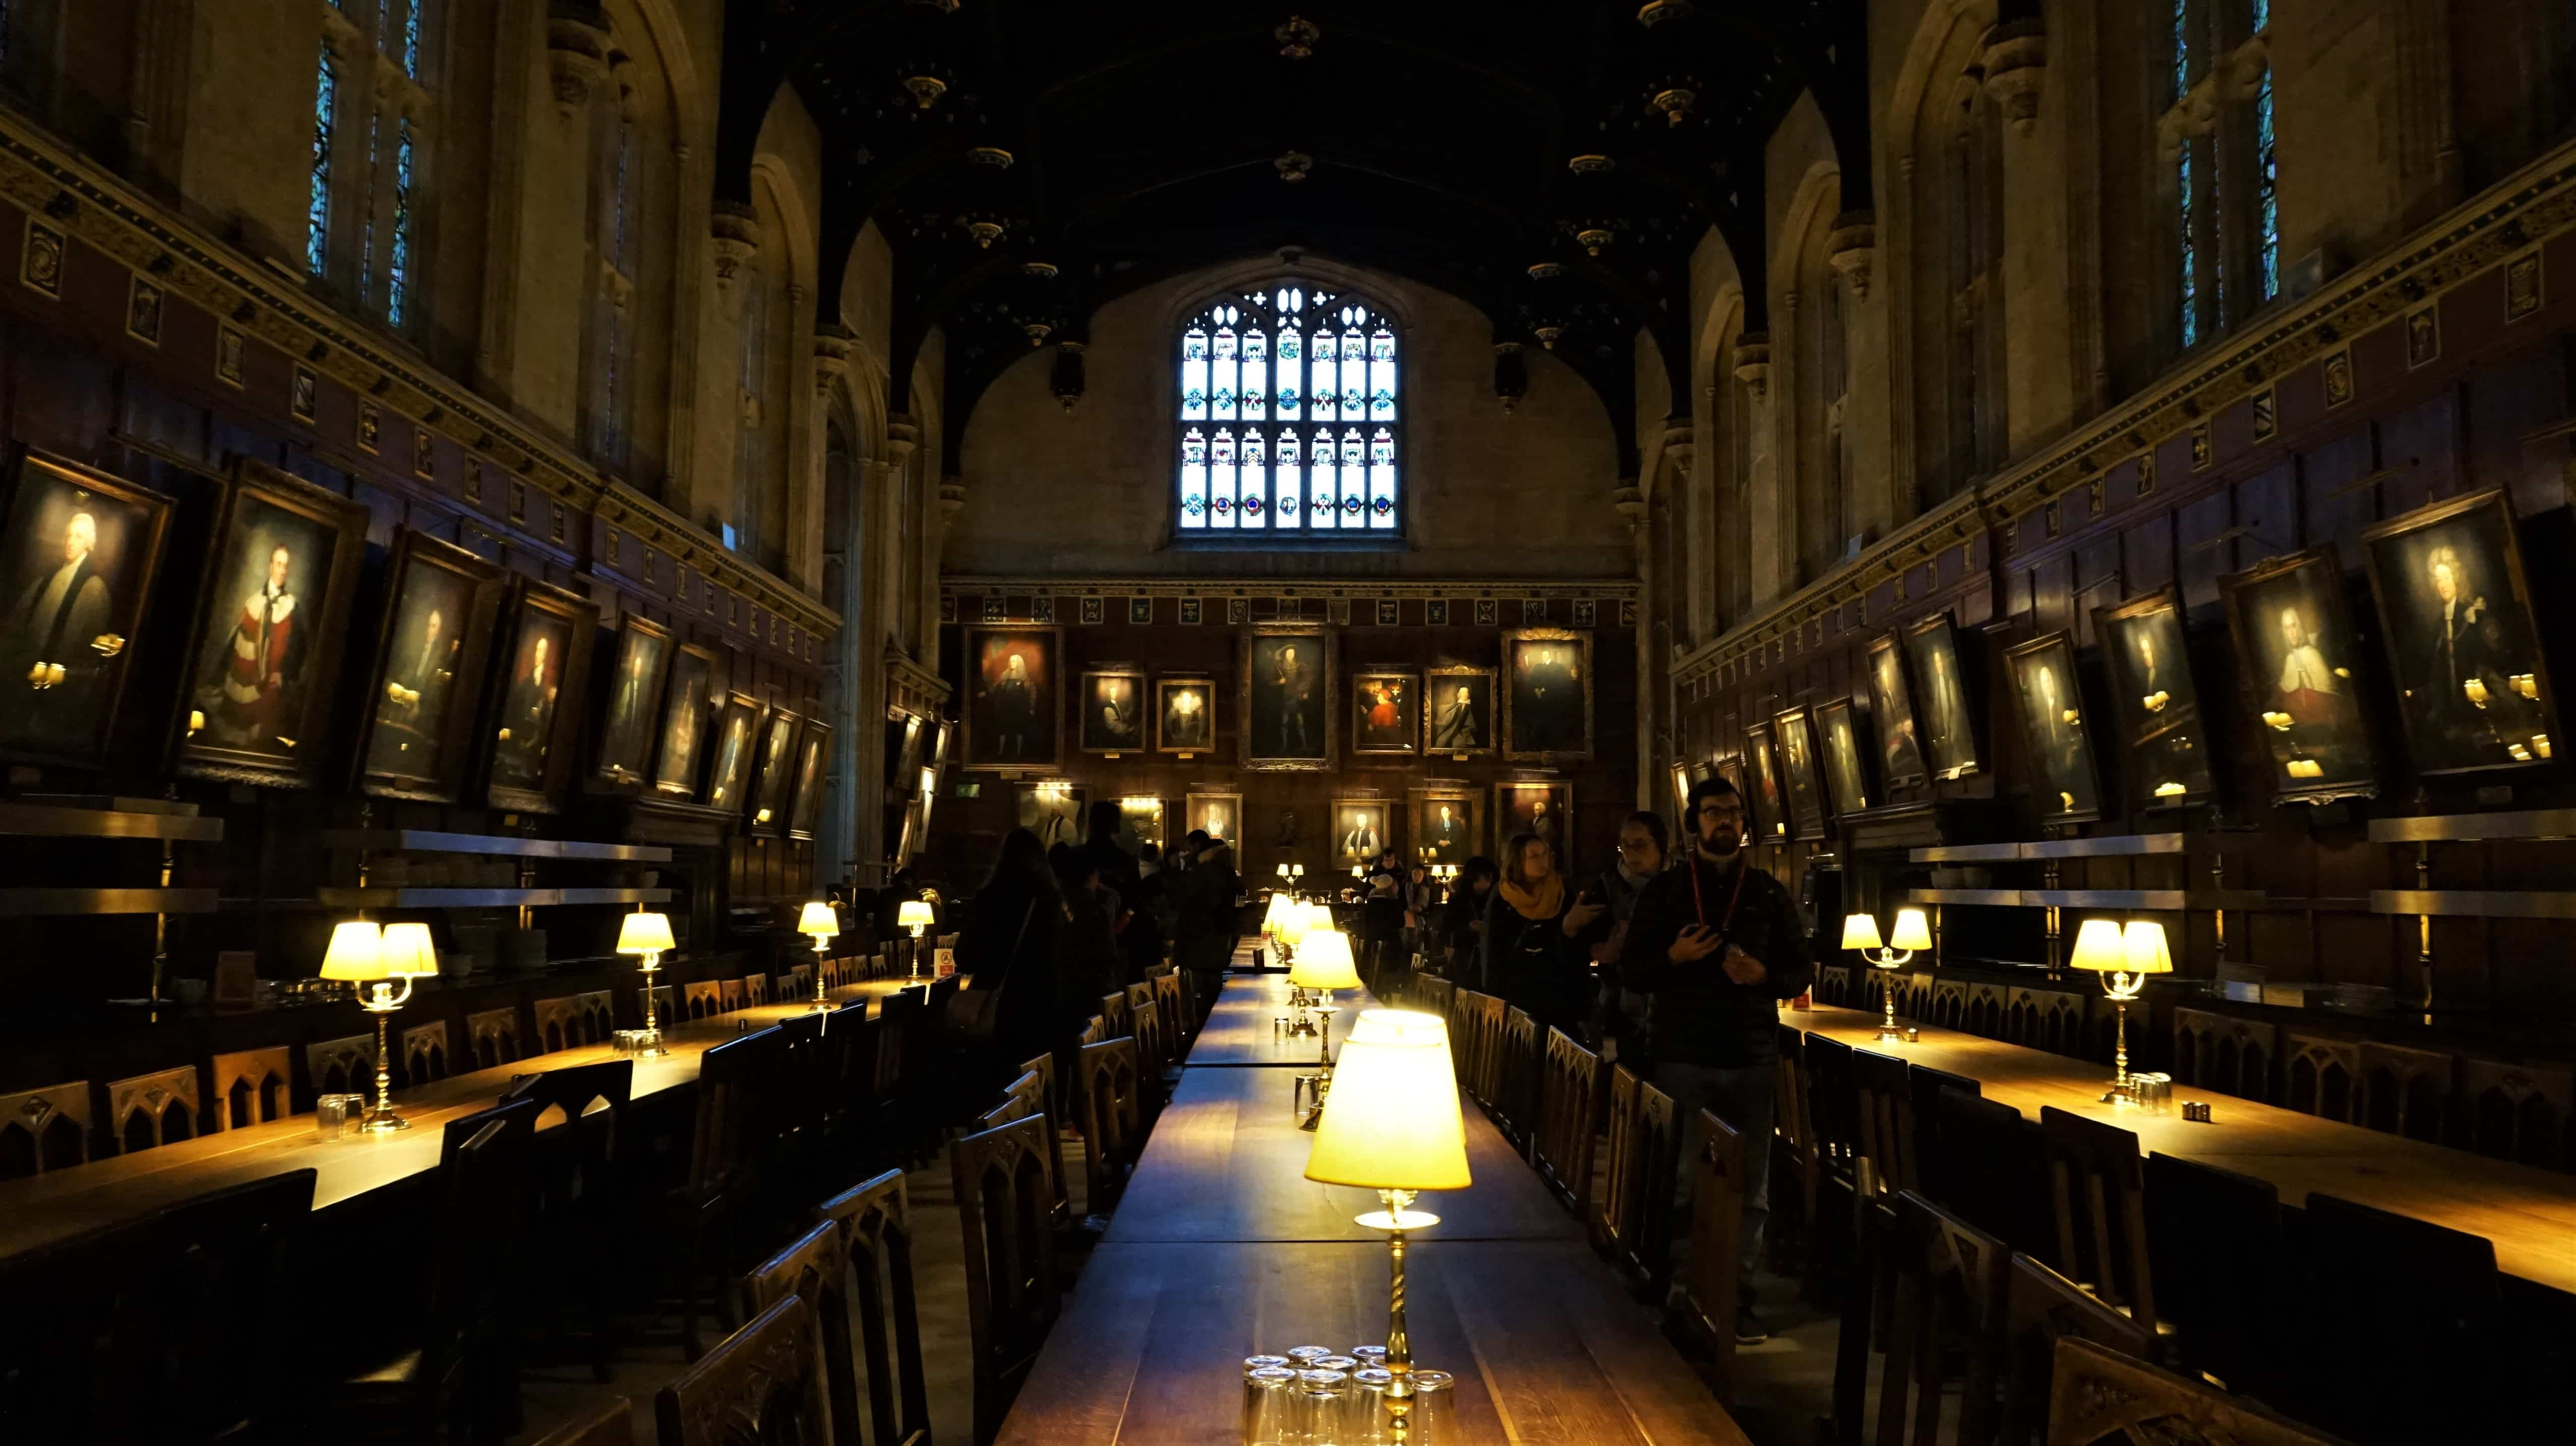 The Great Hall in Christ Church College, Oxford